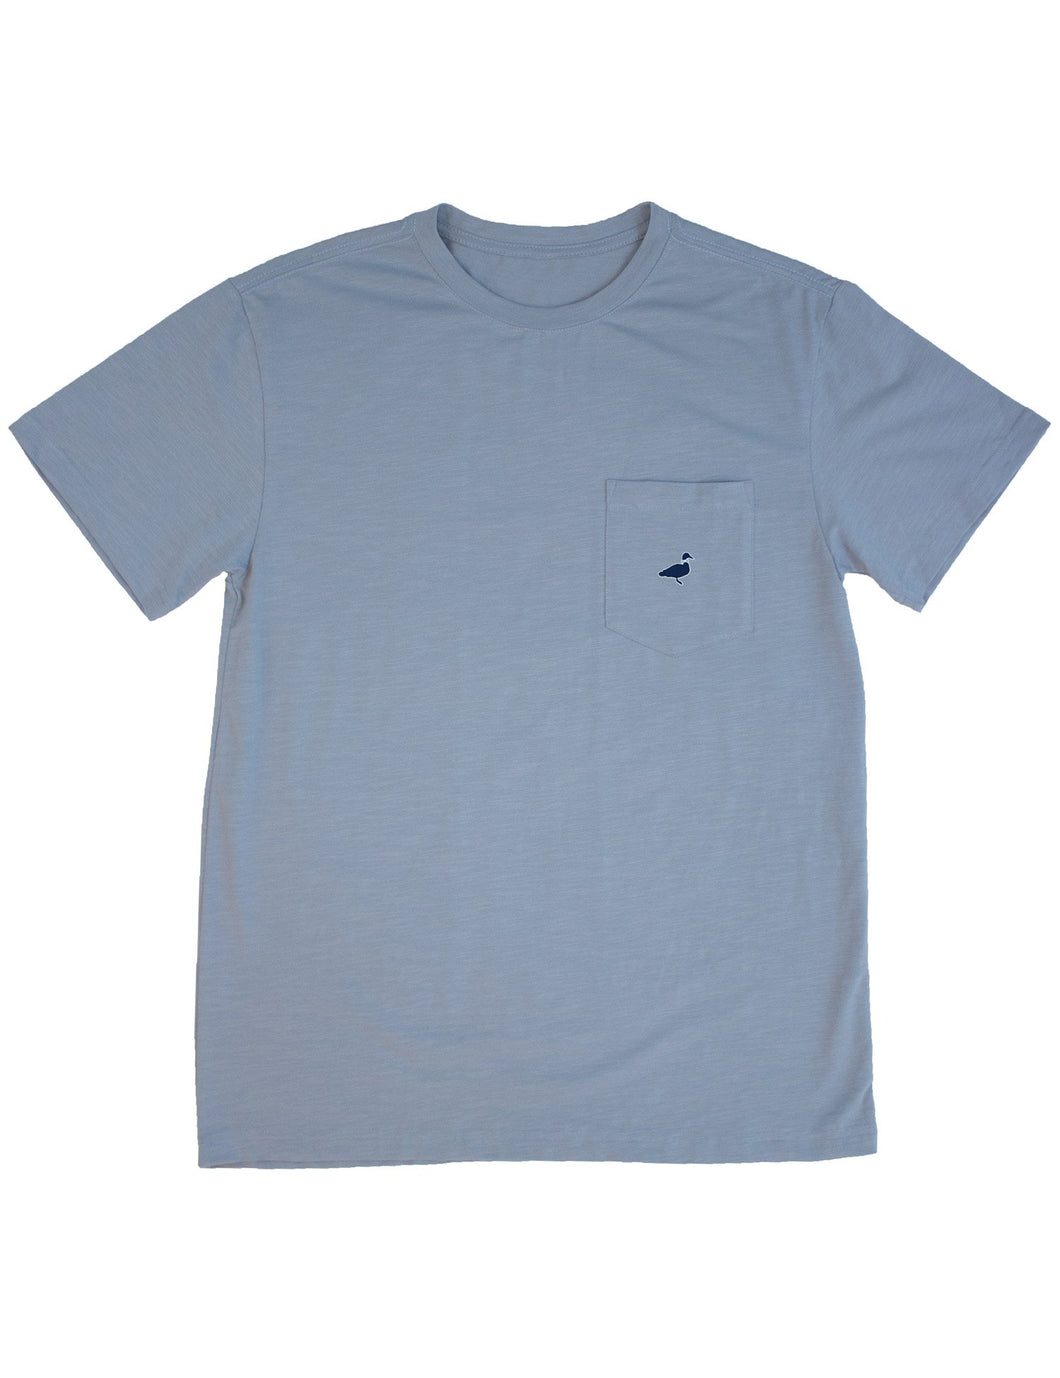 Lil Ducklings Shore Tee in Salt Blue by Properly Tied